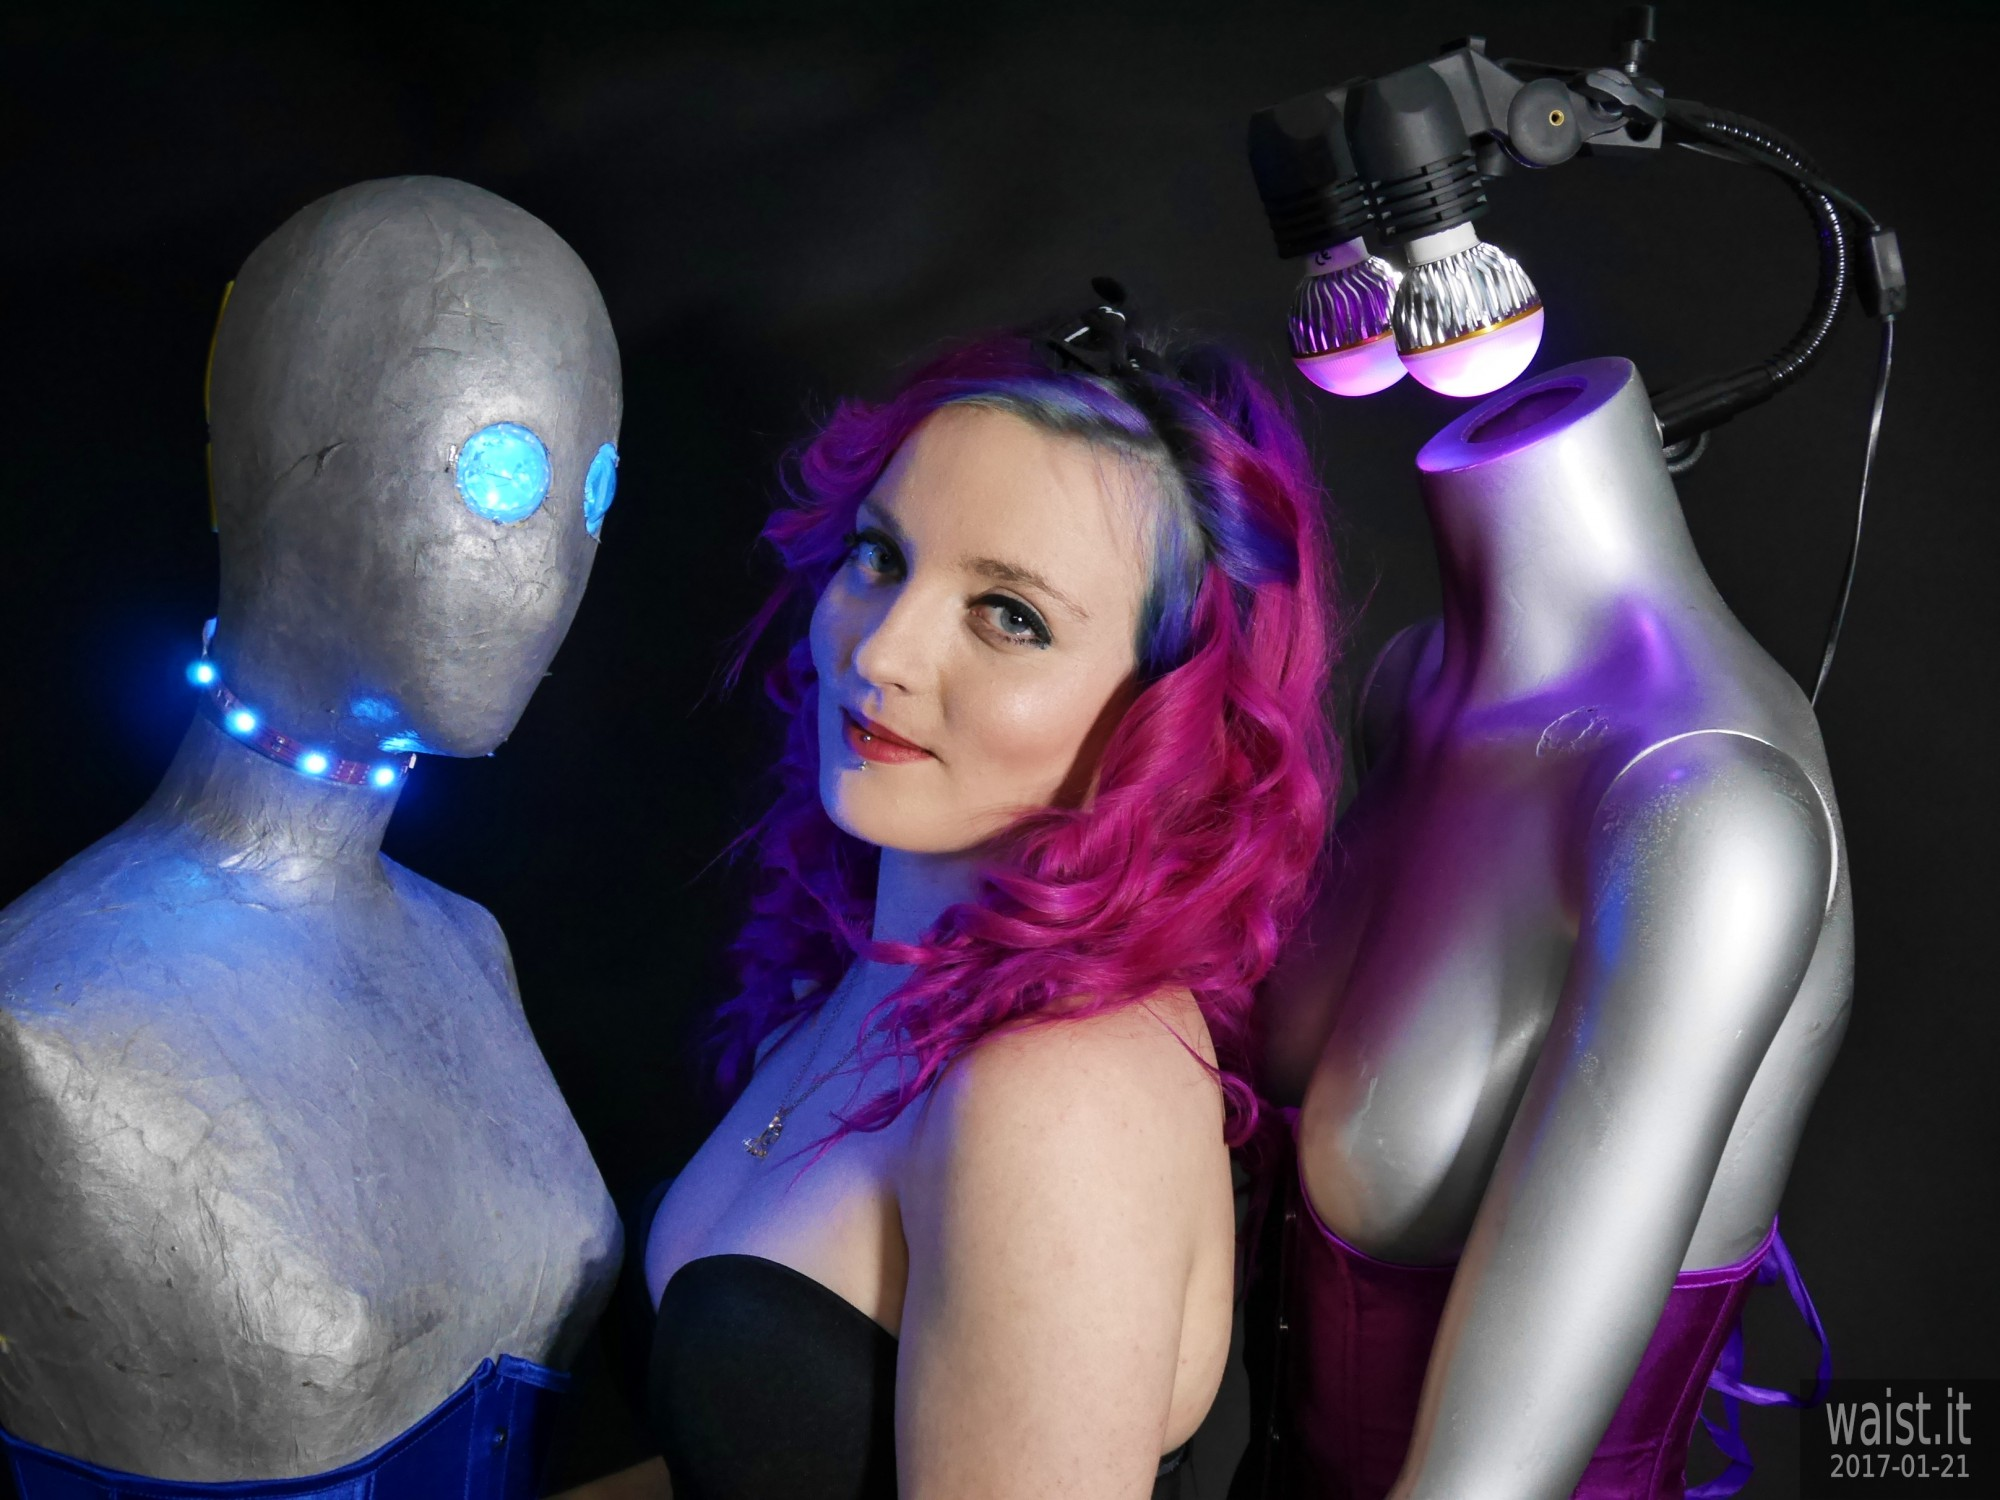 2017-01-21 Tasha in black Miraclesuit with mannequins